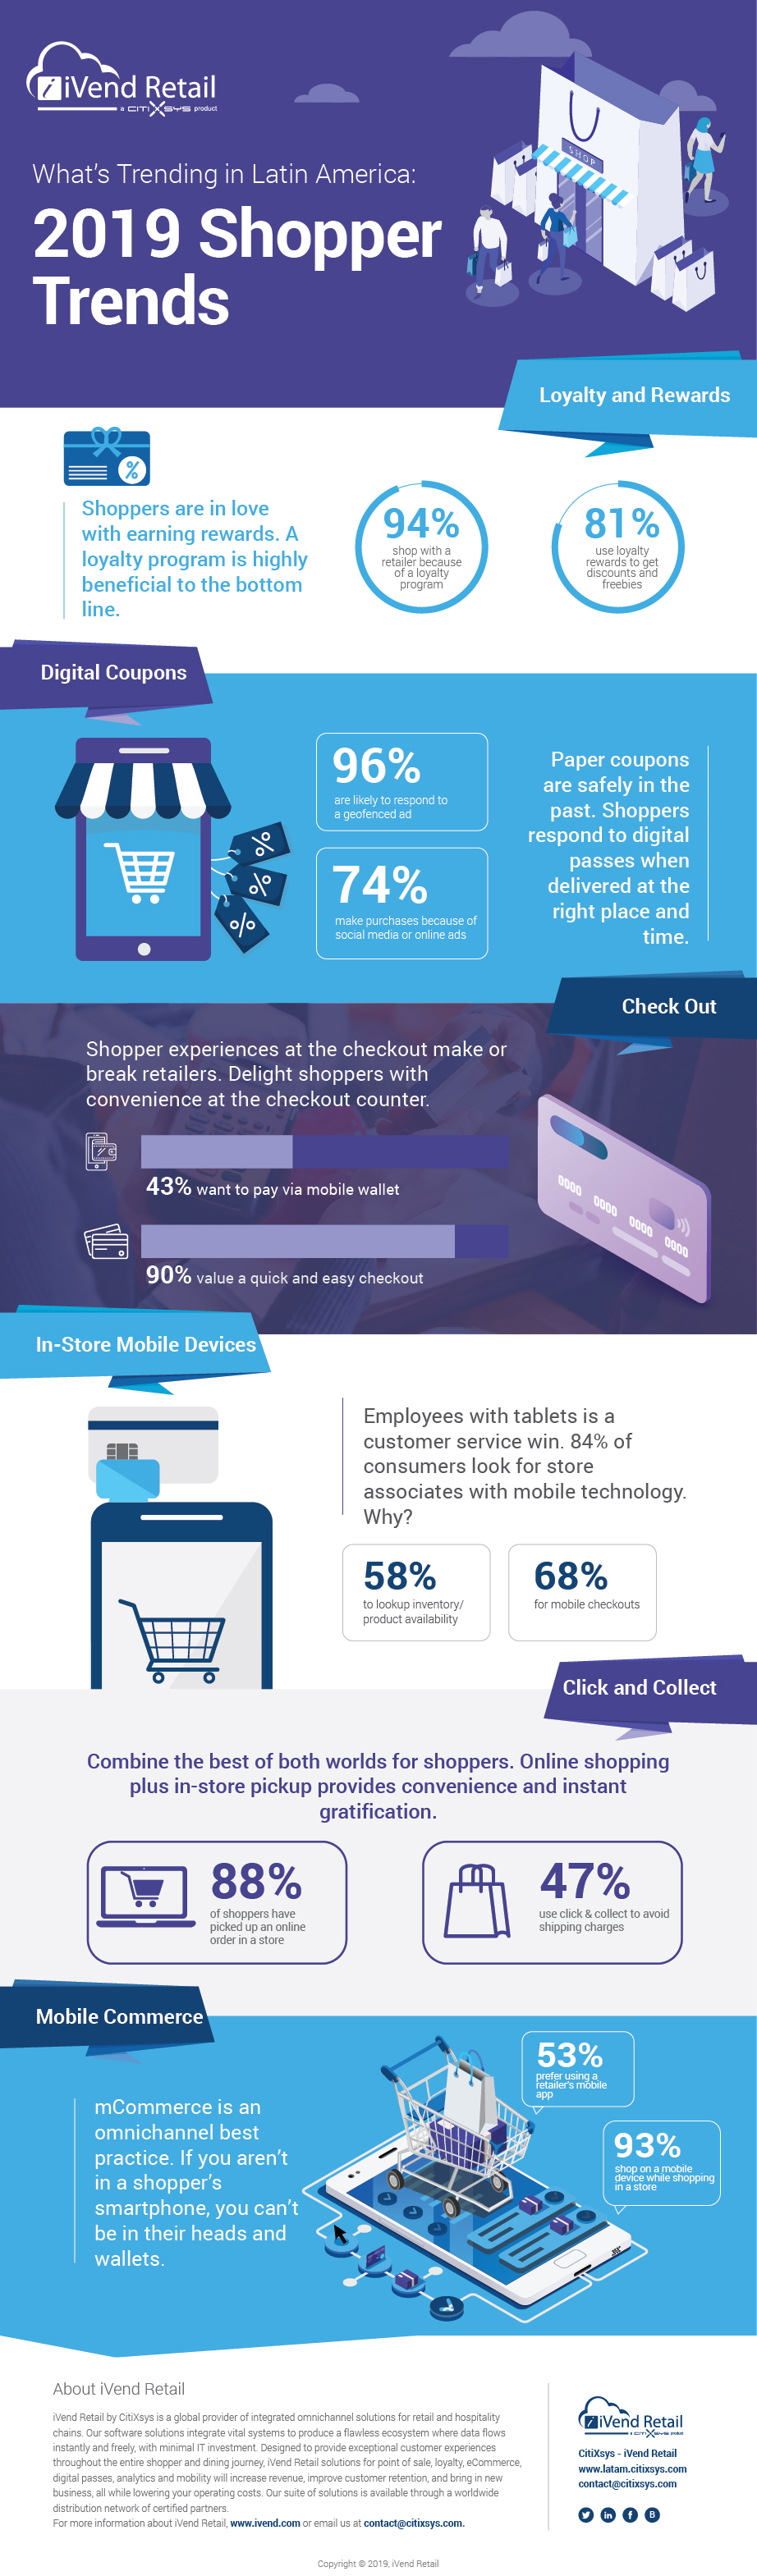 2019 Global Shopper Trends - Latin America - Infographic